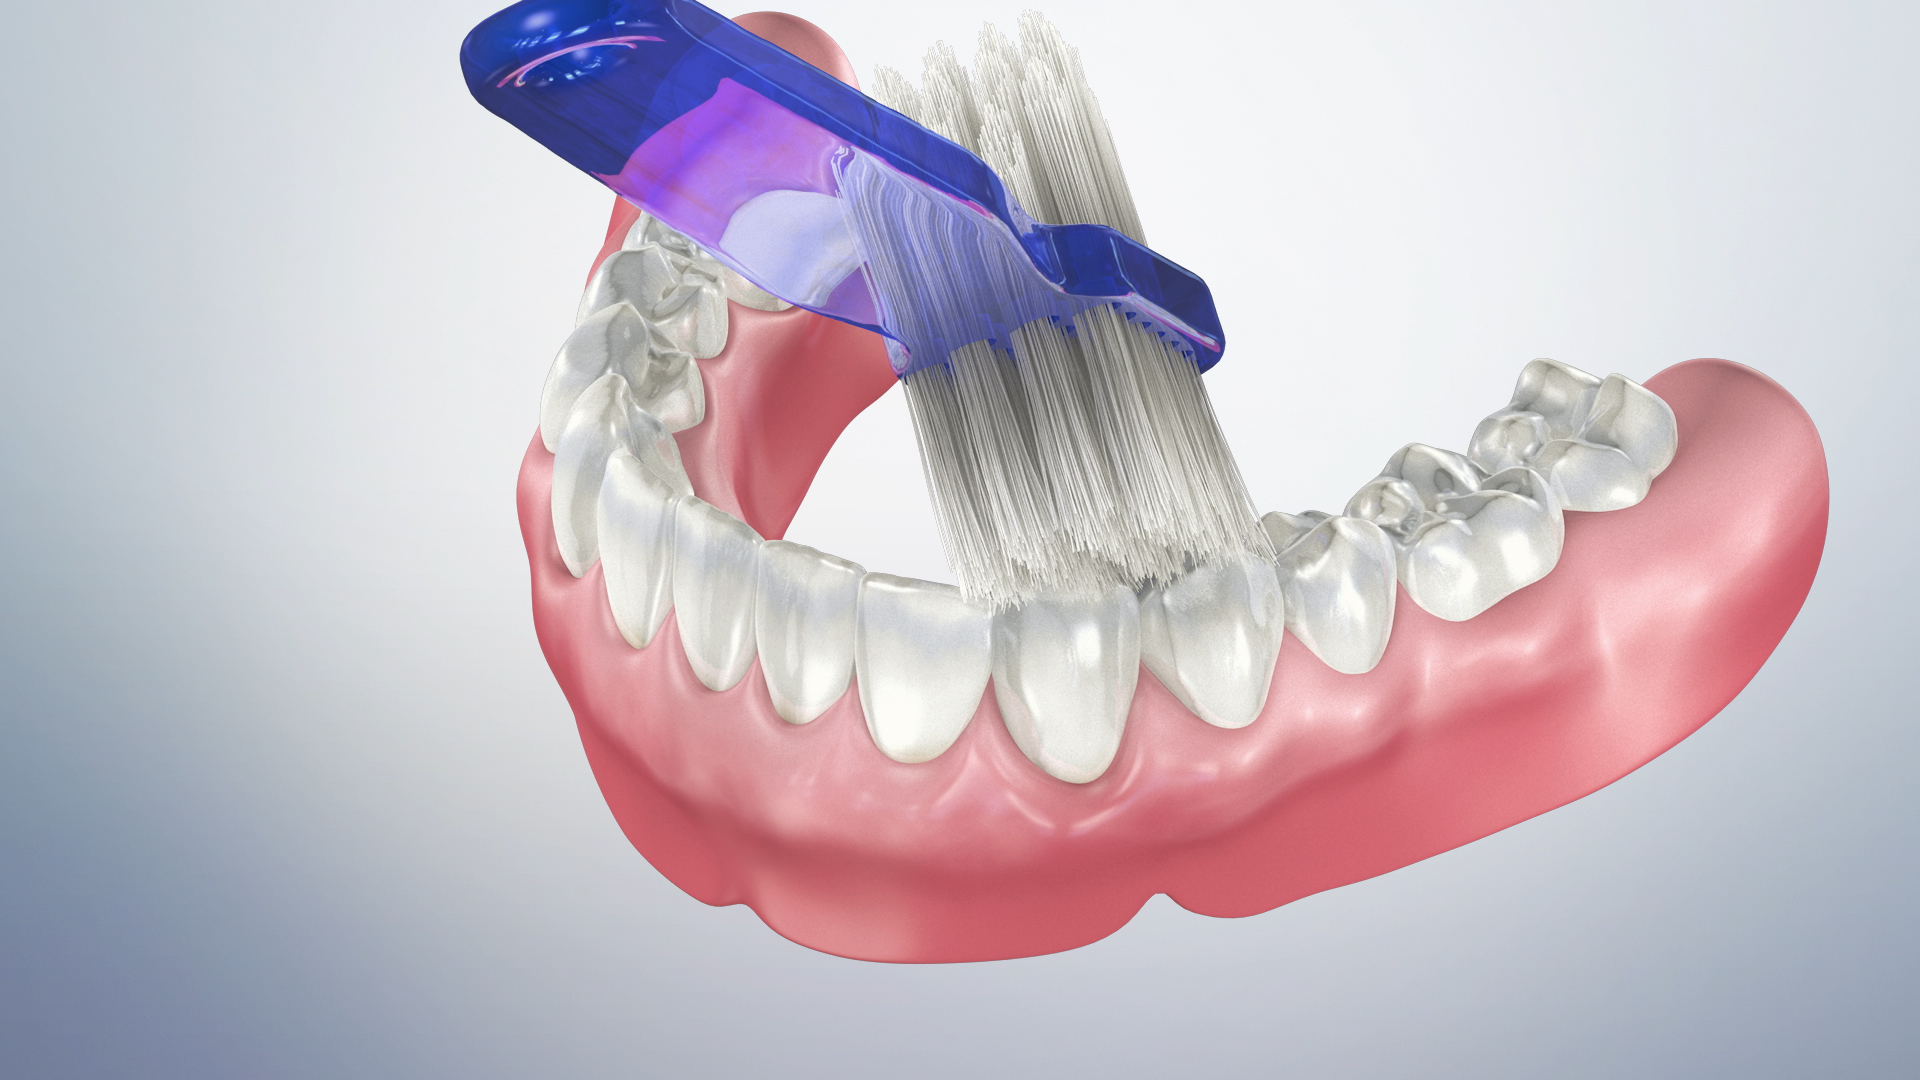 Thumbnail for a video on Home Maintenance for Dentures